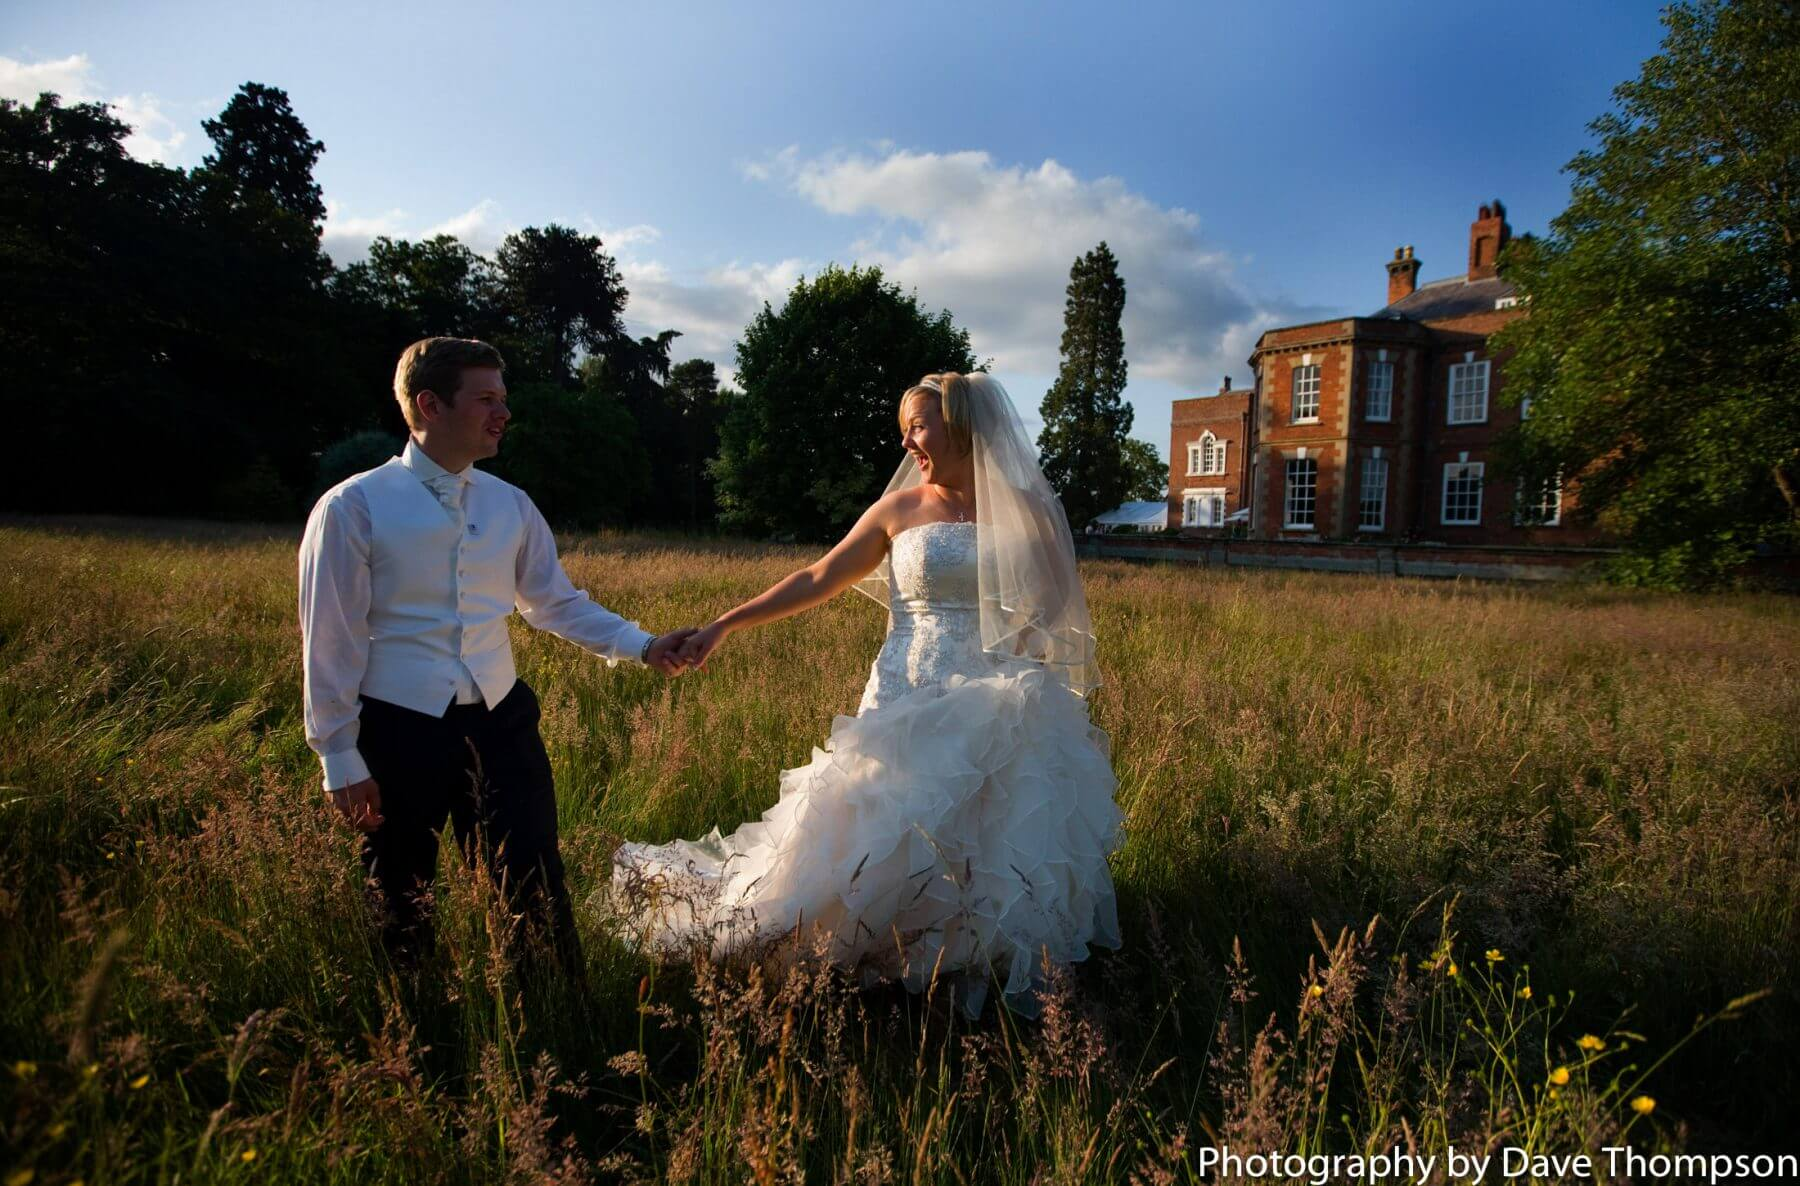 How to achieve natural wedding photography of the bride and goom